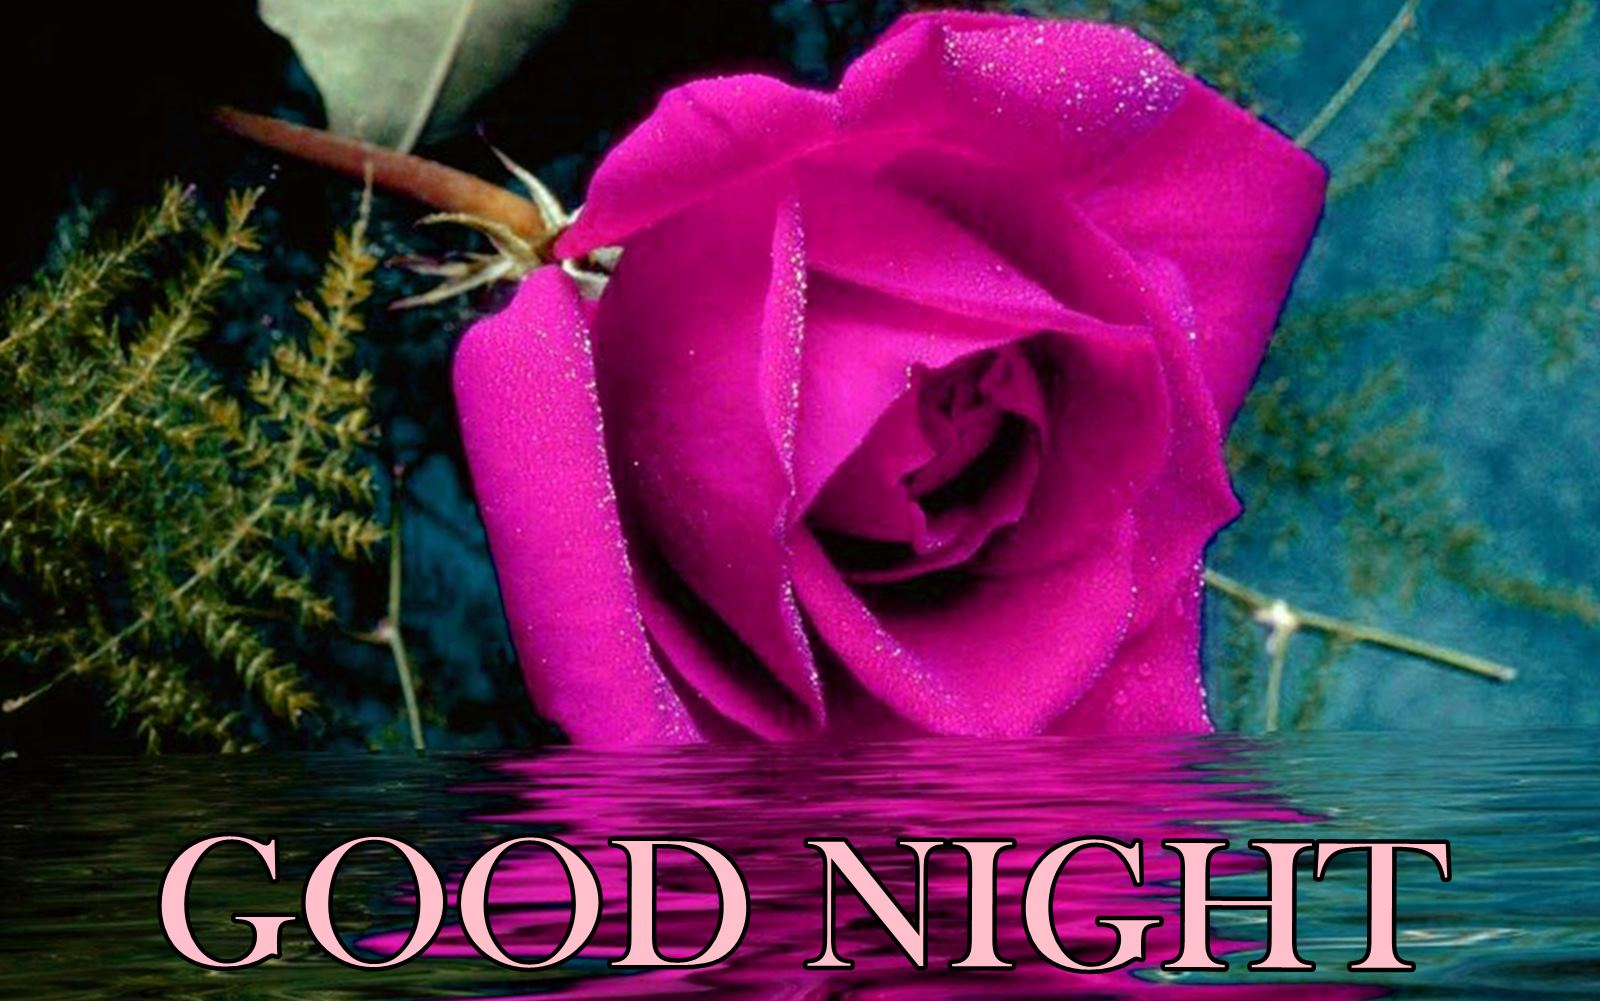 Good Night Flowers Pictures and Graphics